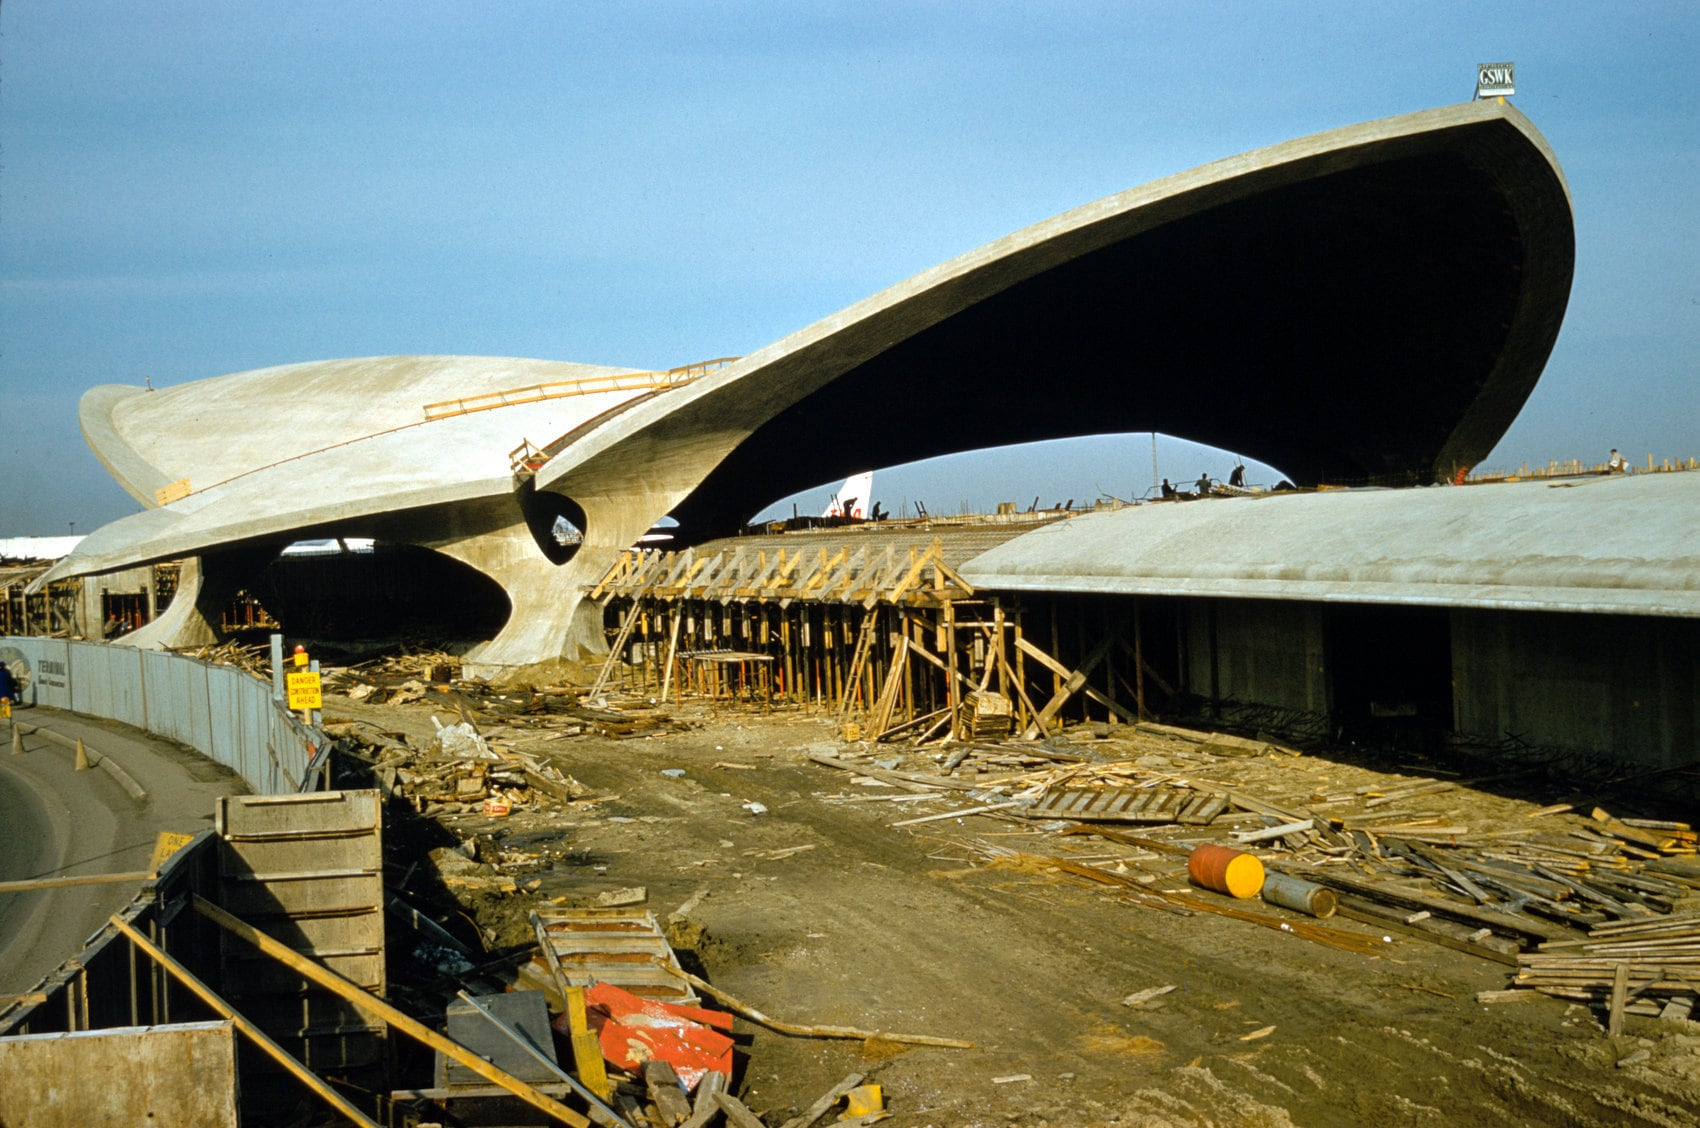 Idlewild JFK 1960s airport terminal construction - Outside (3)